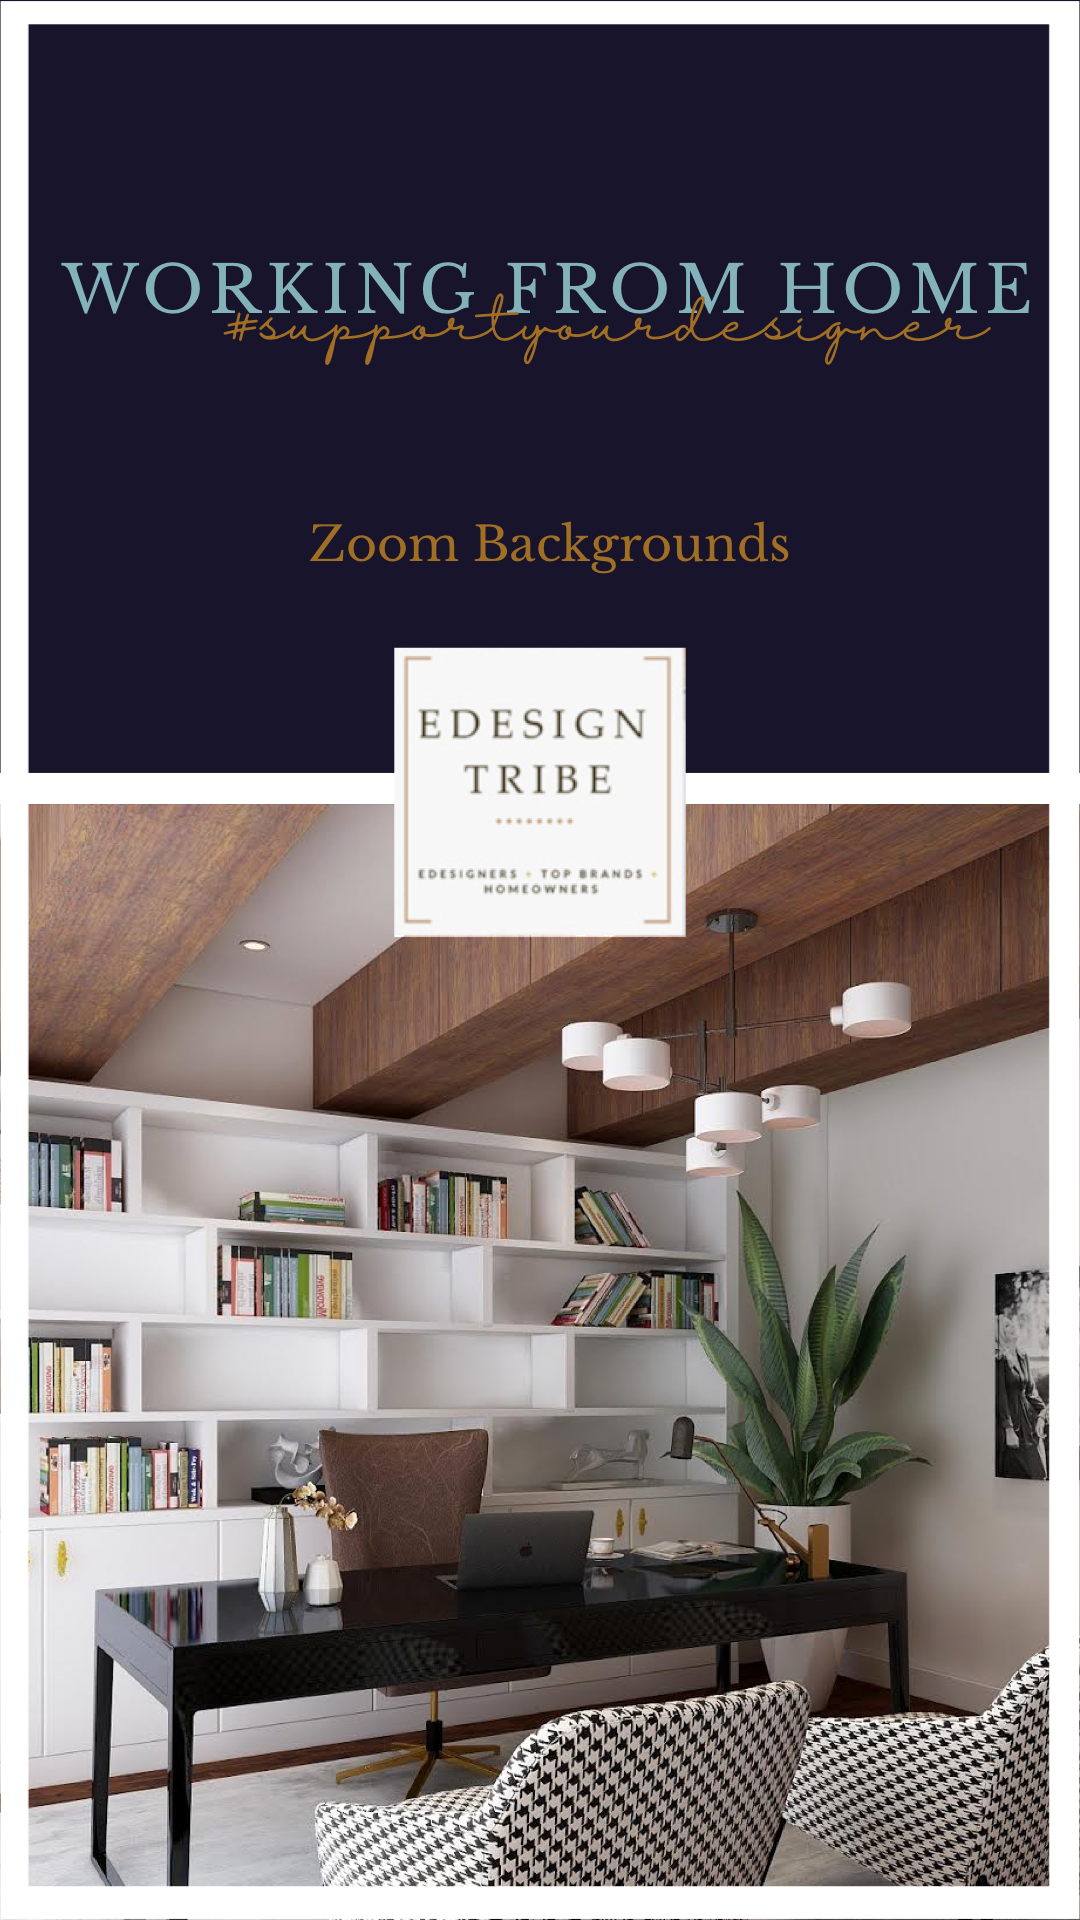 Working From Home Zoom Backgrounds Giveaway In 2020 Home Office Design Office Interior Design Living Design